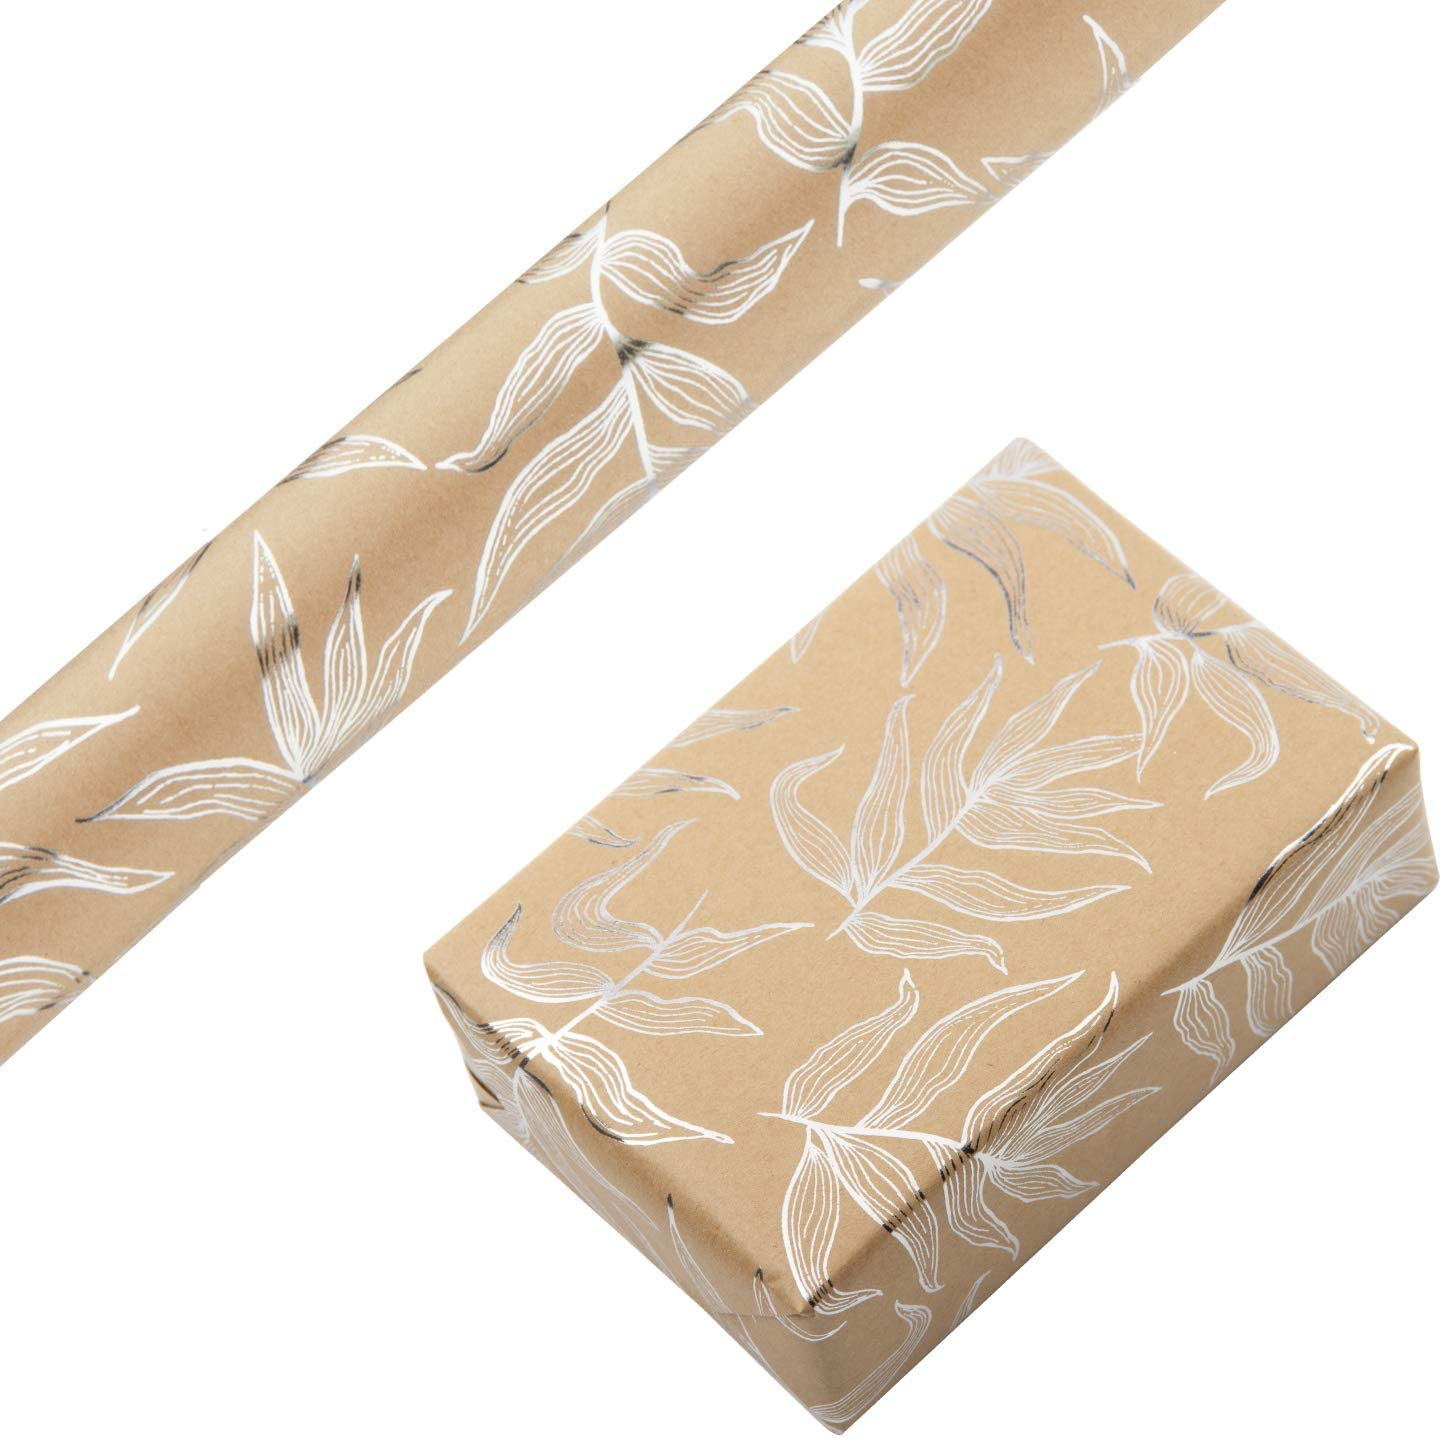 RUSPEPA Kraft Wrapping Paper Roll - Foil Silver Leaf Design Wrapping Paper for Wedding, Birthday, Shower, Congrats 1 Roll - 30 inches X 16 feet